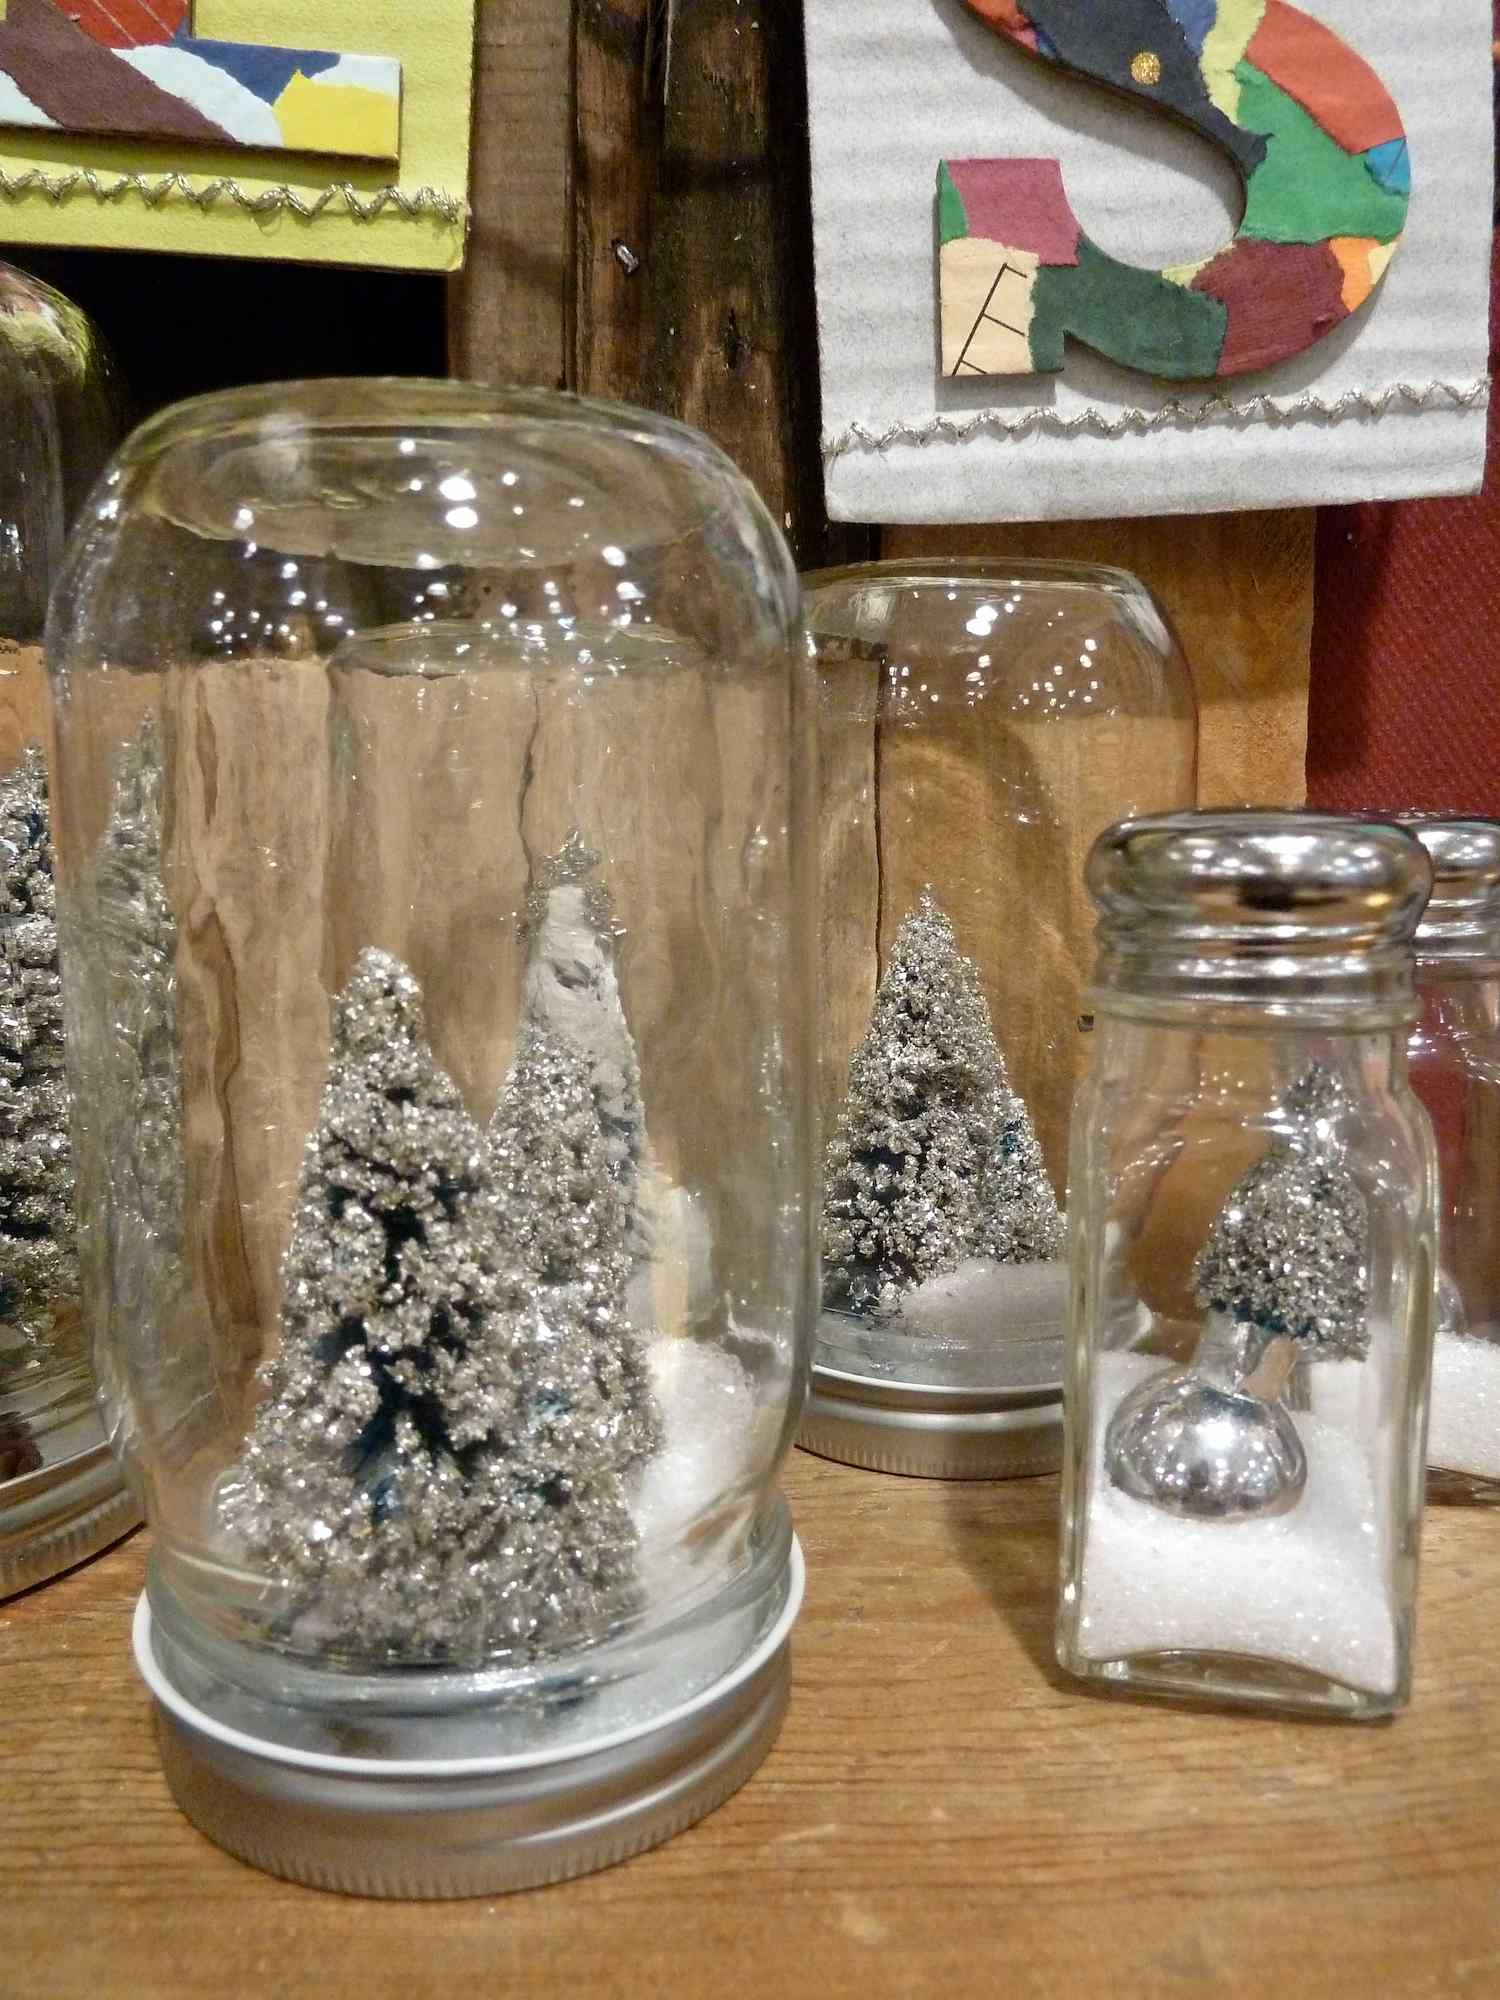 great idea using old pasta jars and sugar sprinklers to make